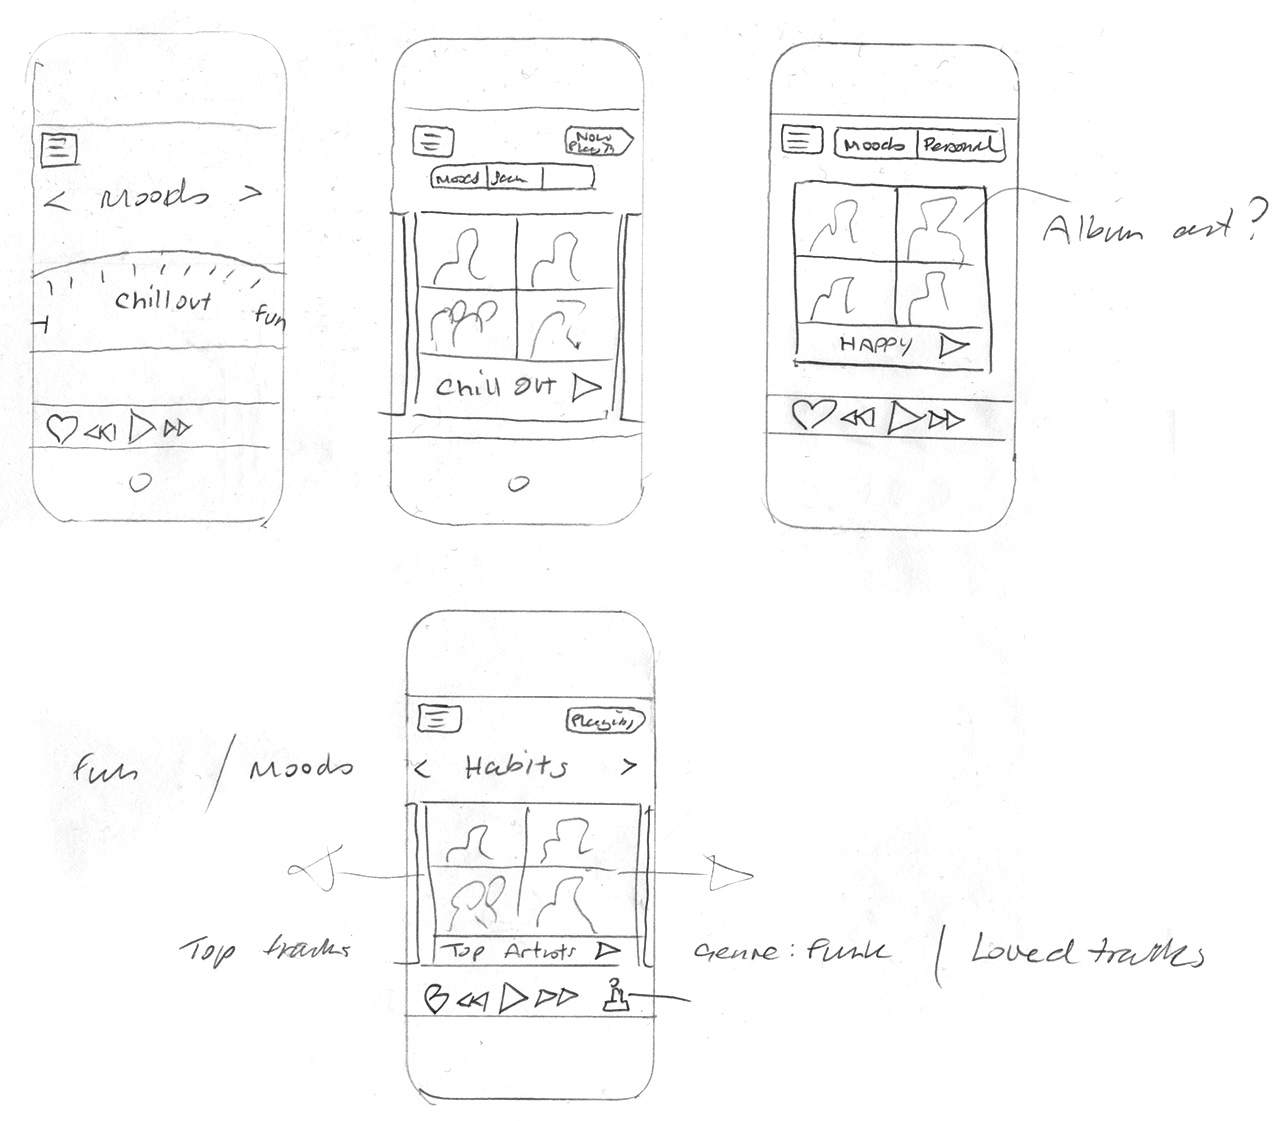 scrobbler tablet mobile music app design sketches